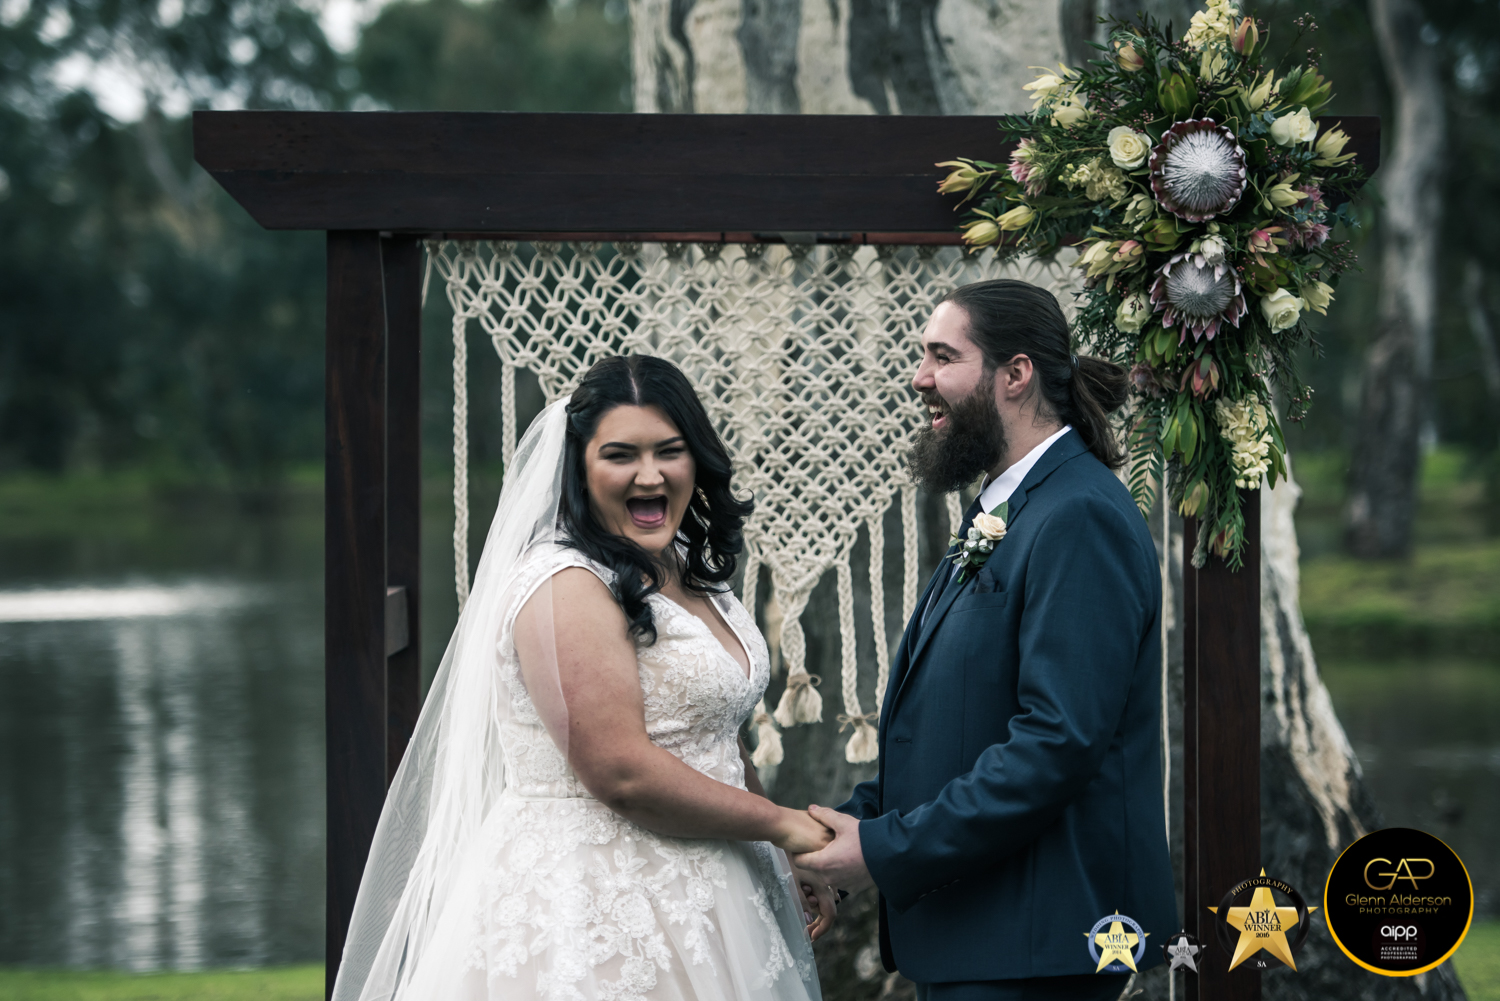 Karlee & Lachlan 01092017 WM (6 of 12)